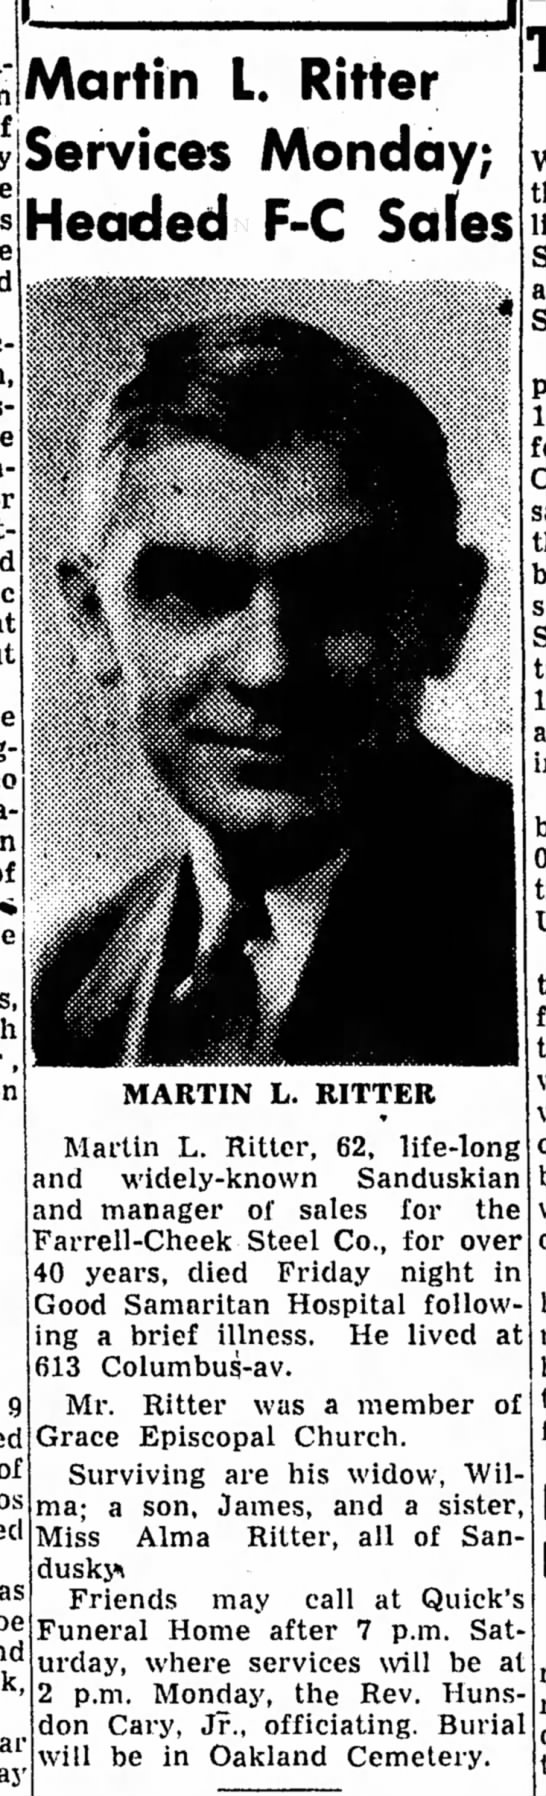 Martin L. Ritter's Obit - Martin L. Ritter • • • byjaefVICGS IVlOndCly;...